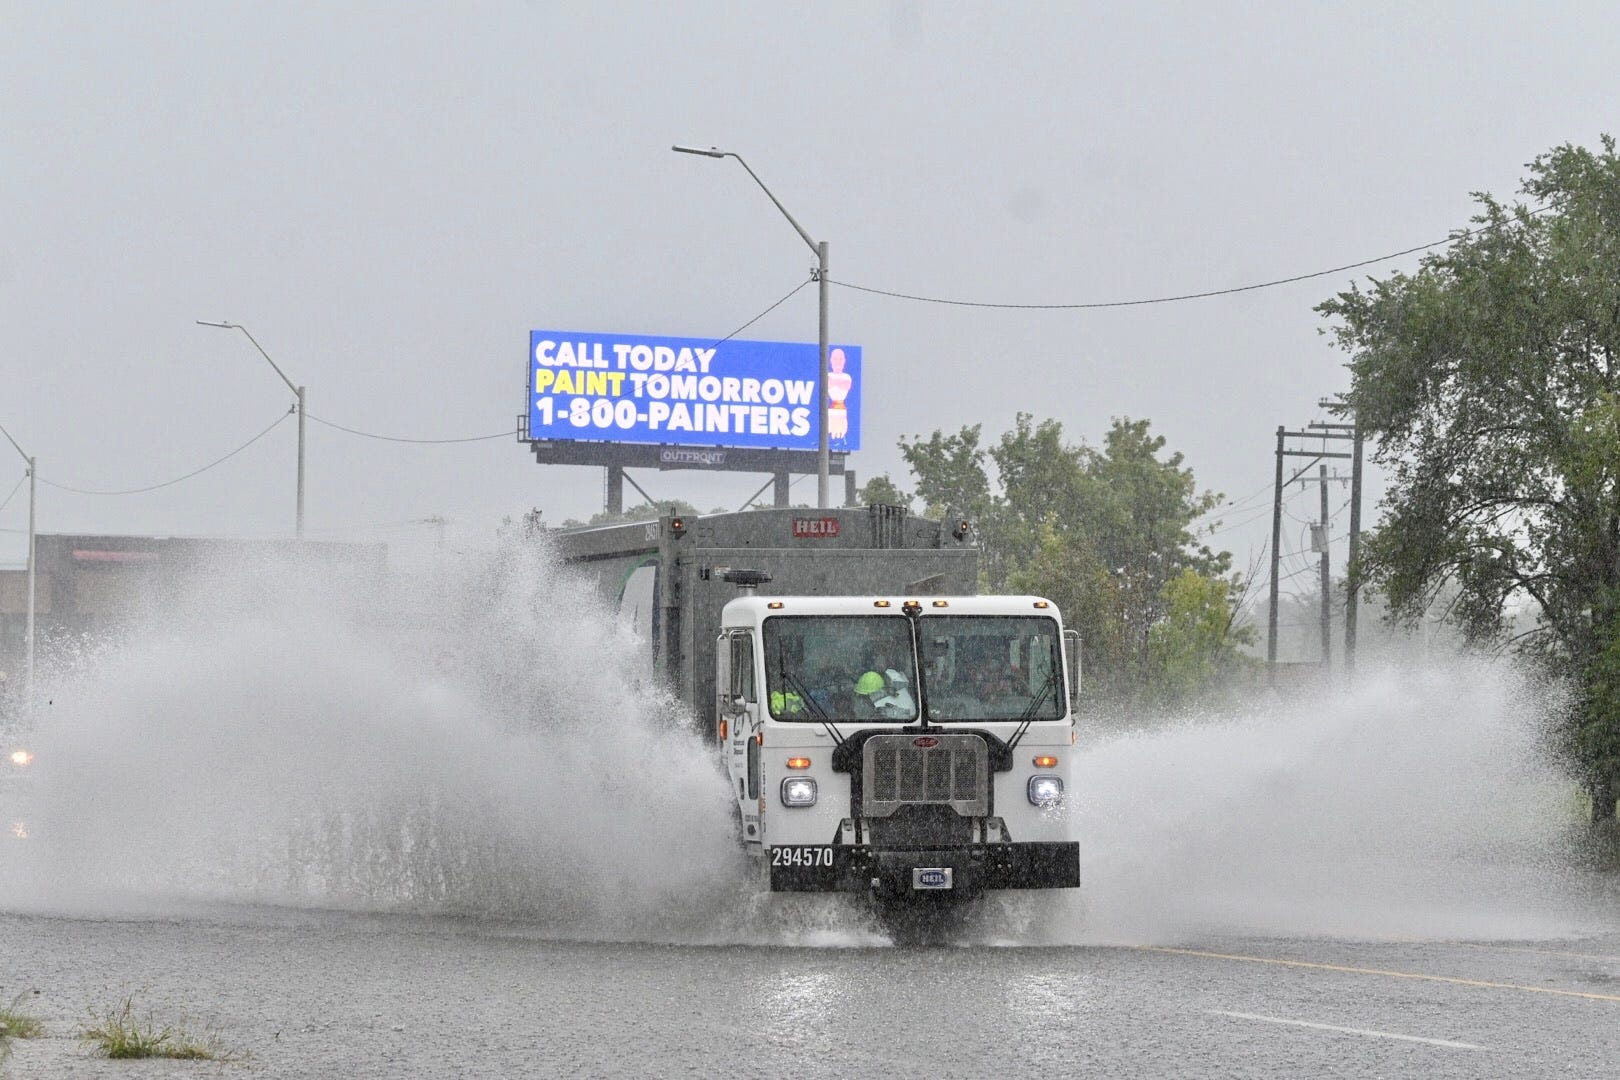 Parts of two Clinton Township roads closed due to flooding Wednesday